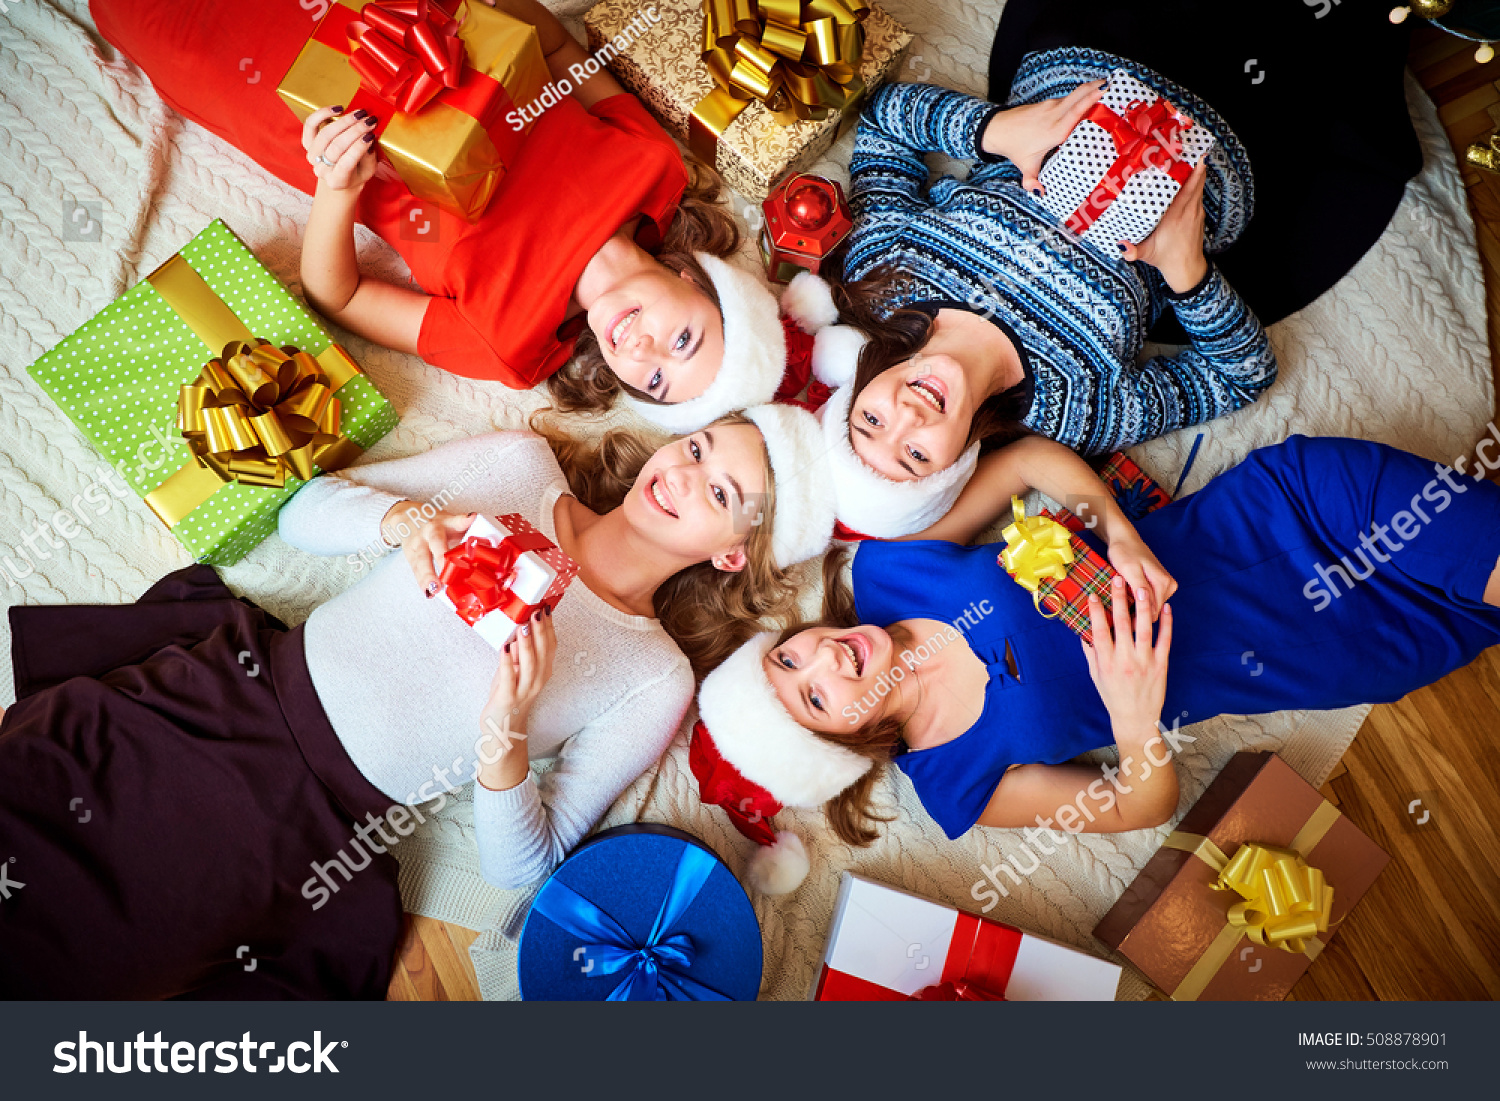 Friends Christmas Gifts On Floor Top Stock Photo (Edit Now ...